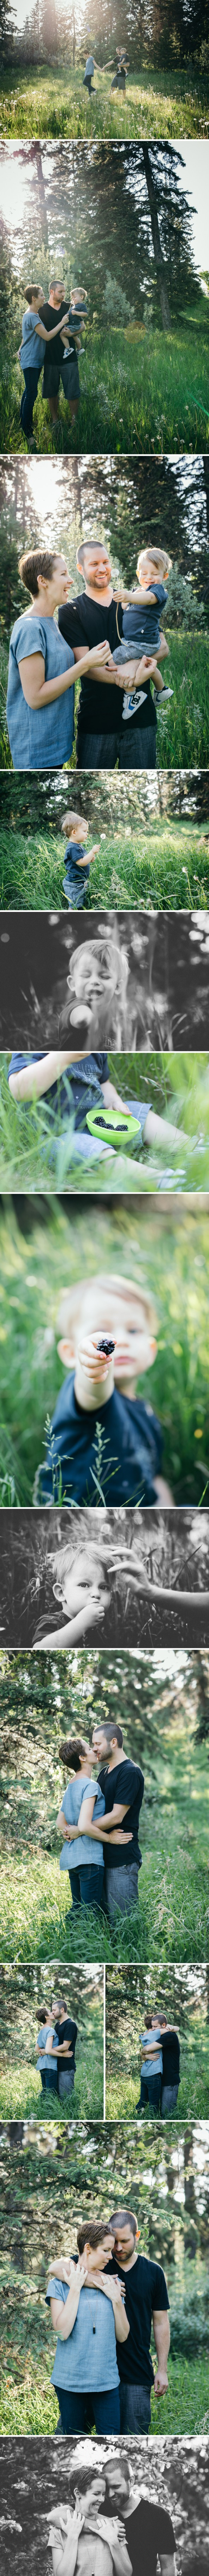 family photography | ©The Paper Deer Photography | thepaperdeer.ca #familyphotography